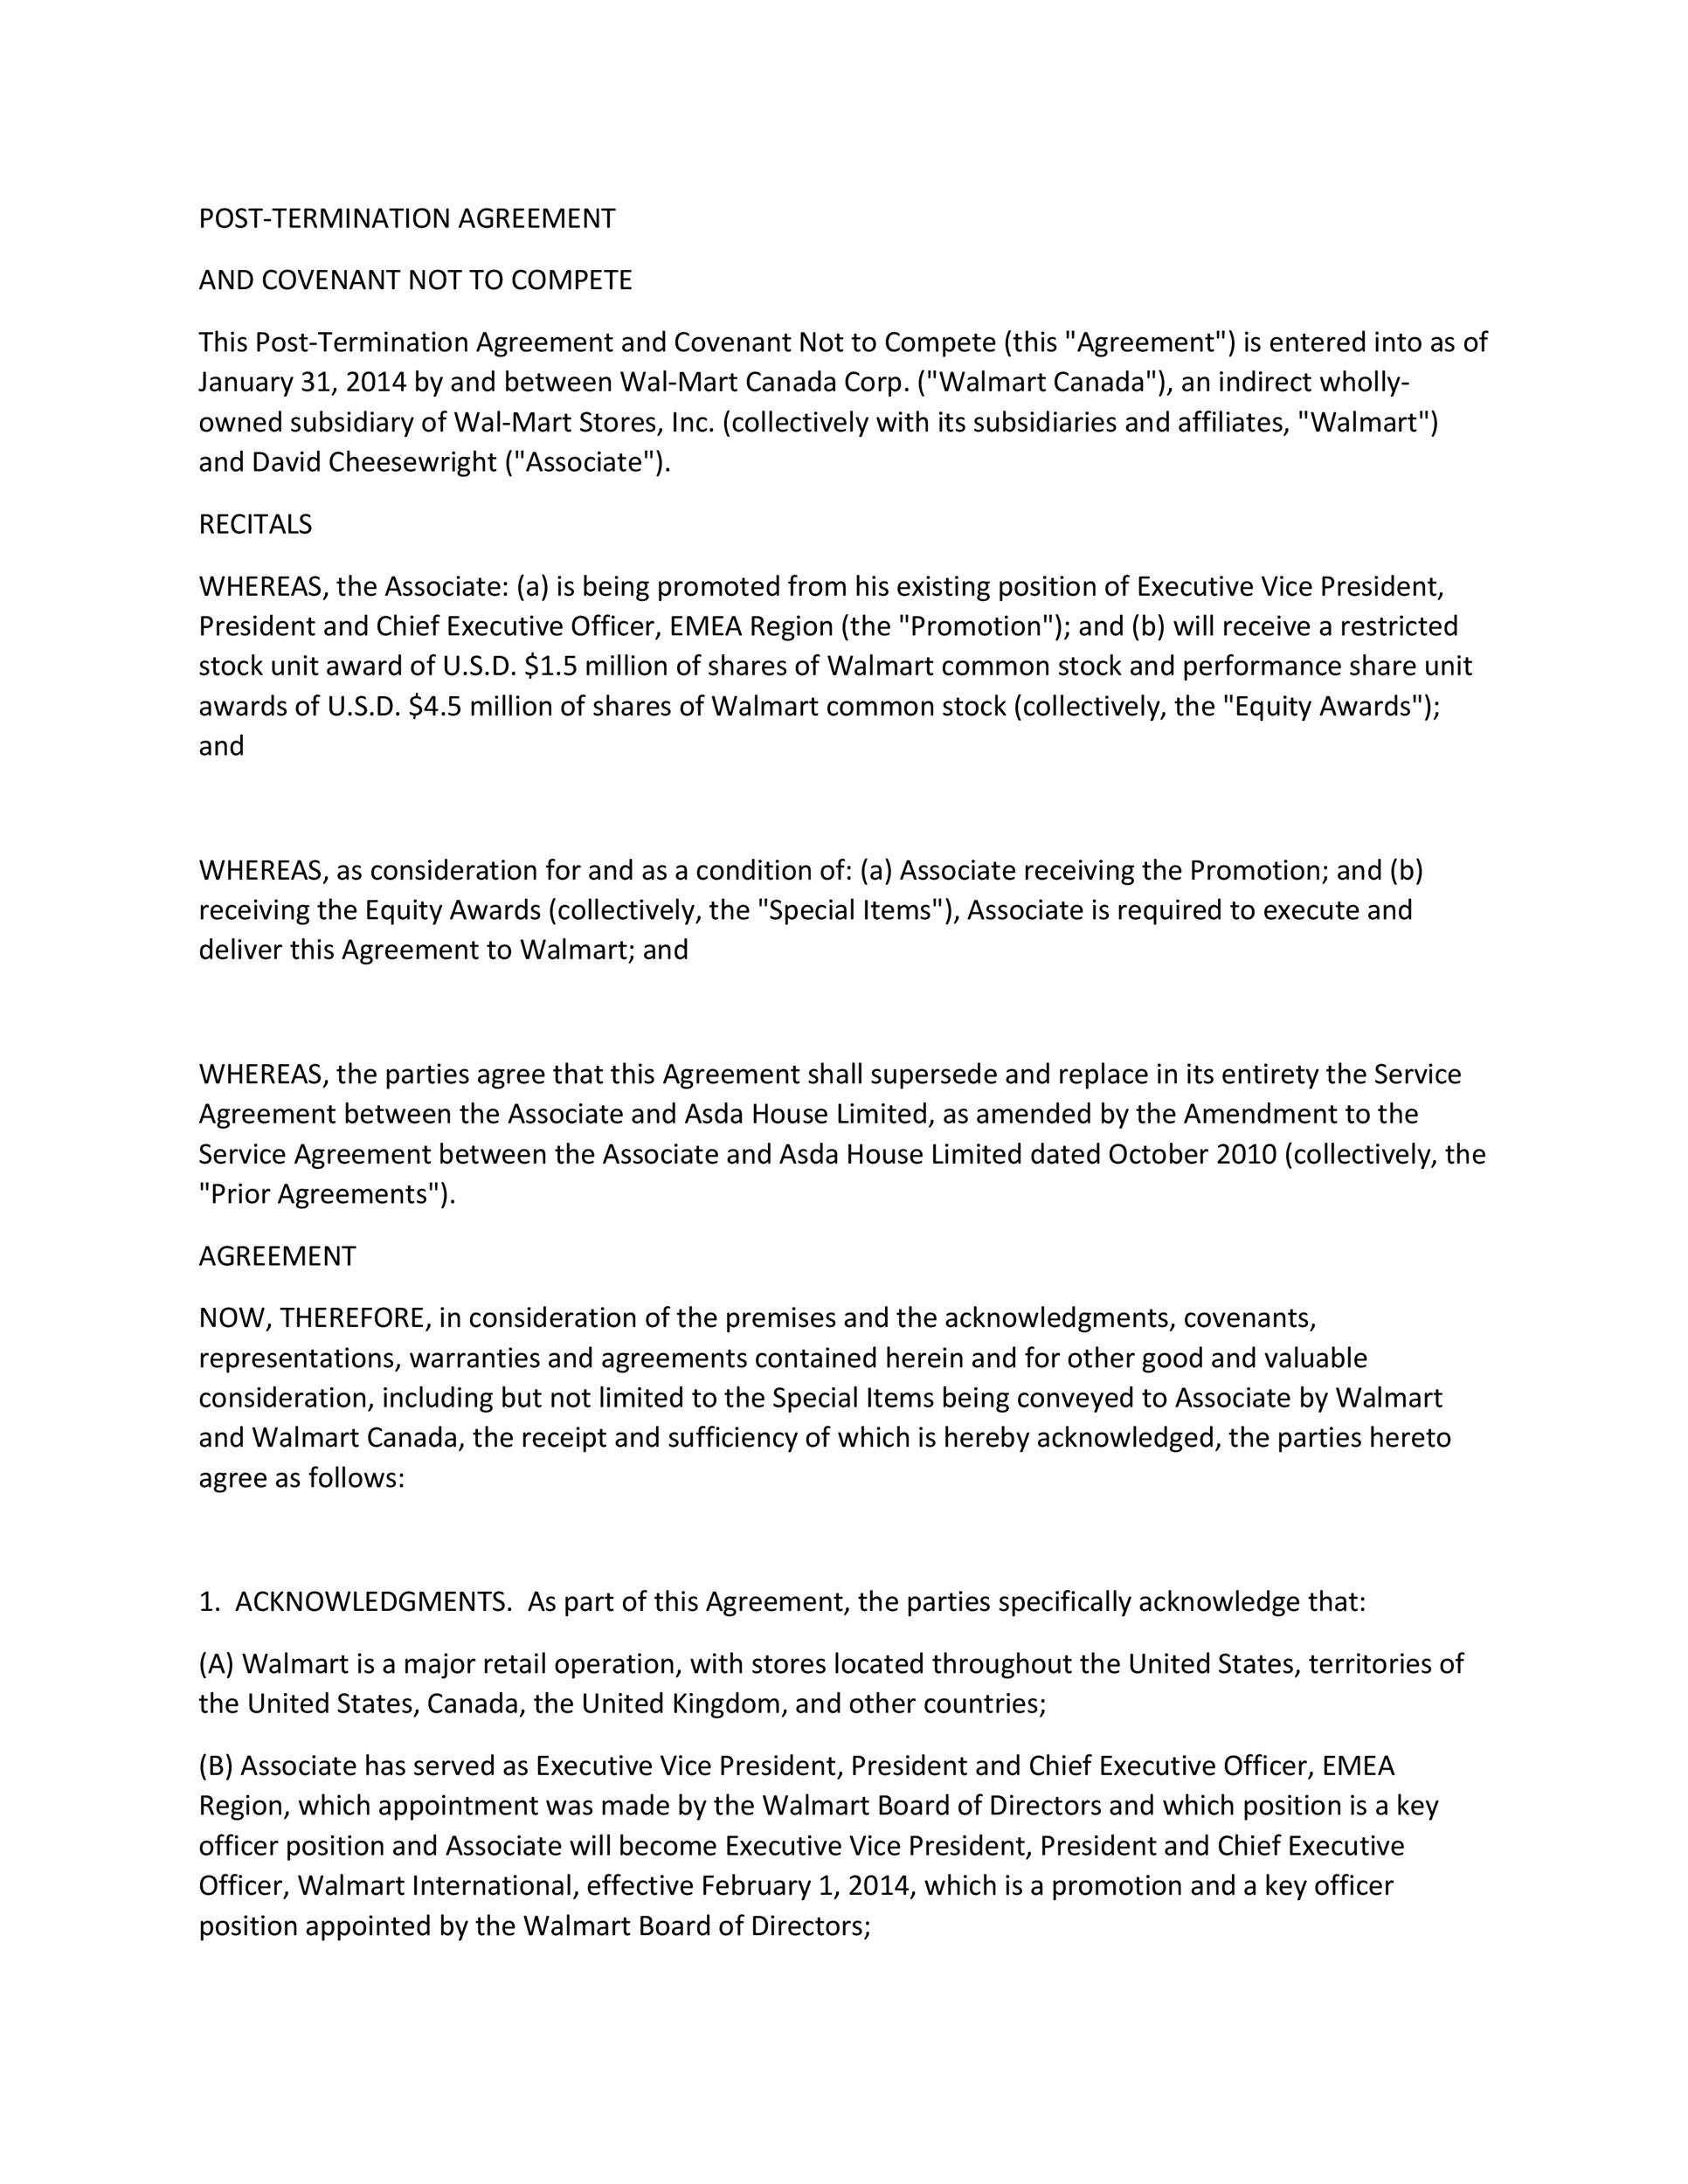 Non-Compete Agreement Template 10